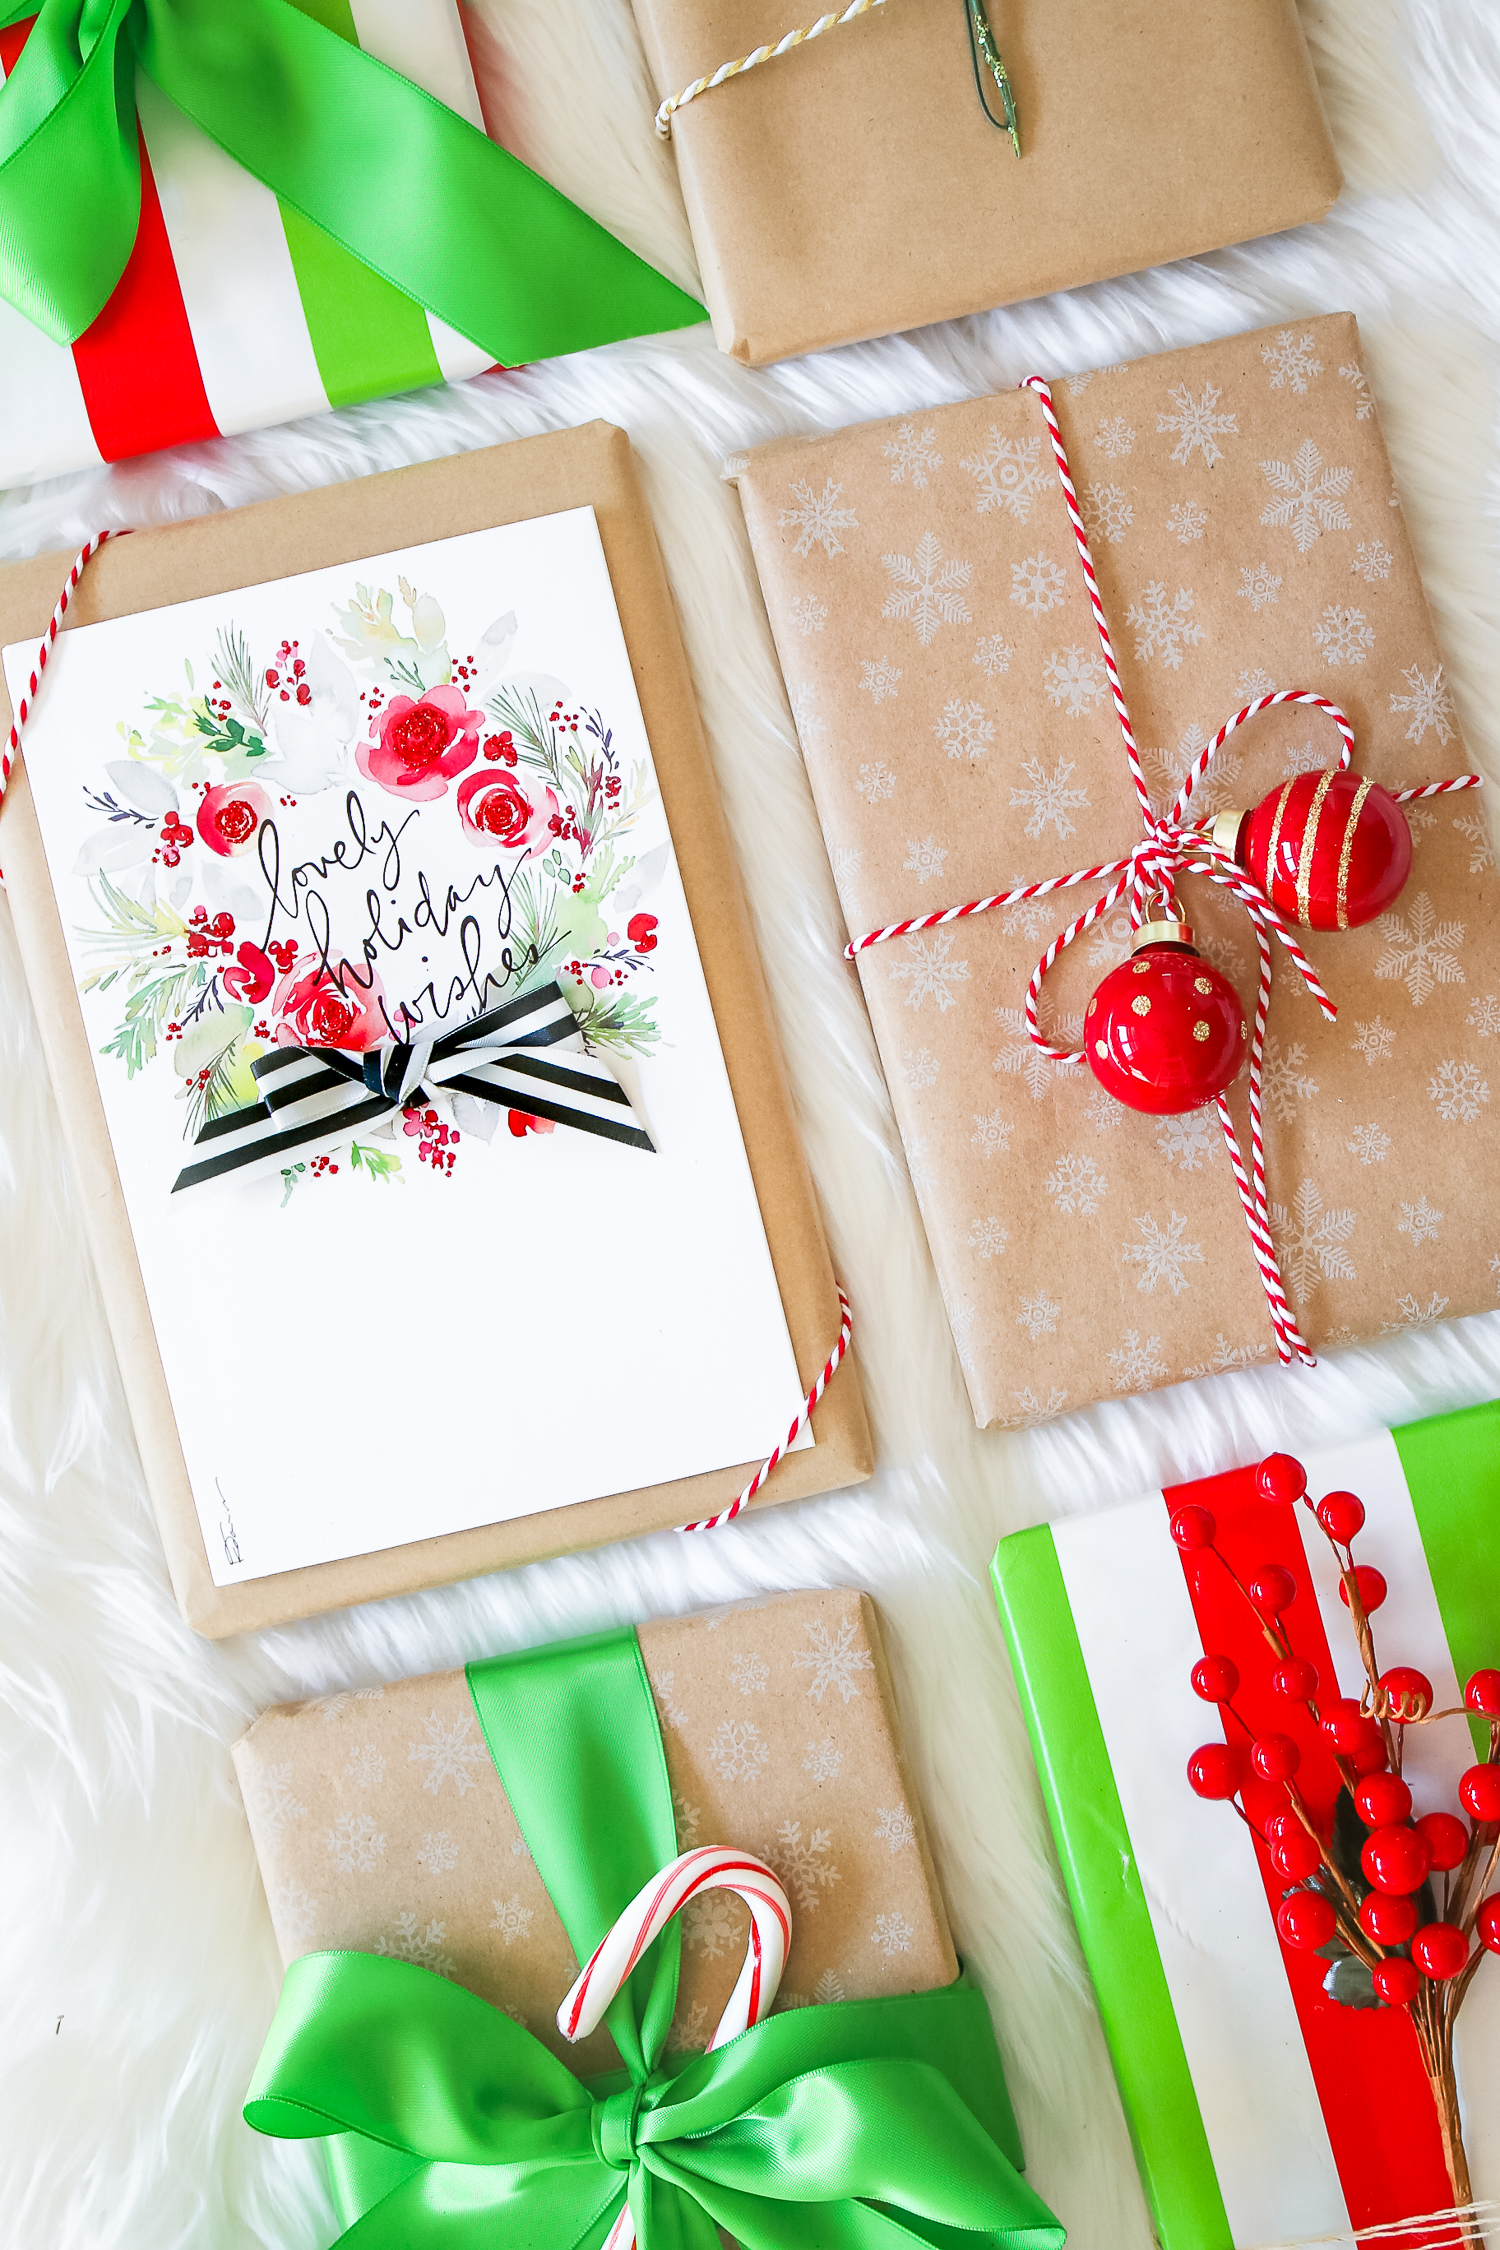 Creative and elegant holiday gift wrap ideas by southern blogger Stephanie Ziajka from Diary of a Debutante